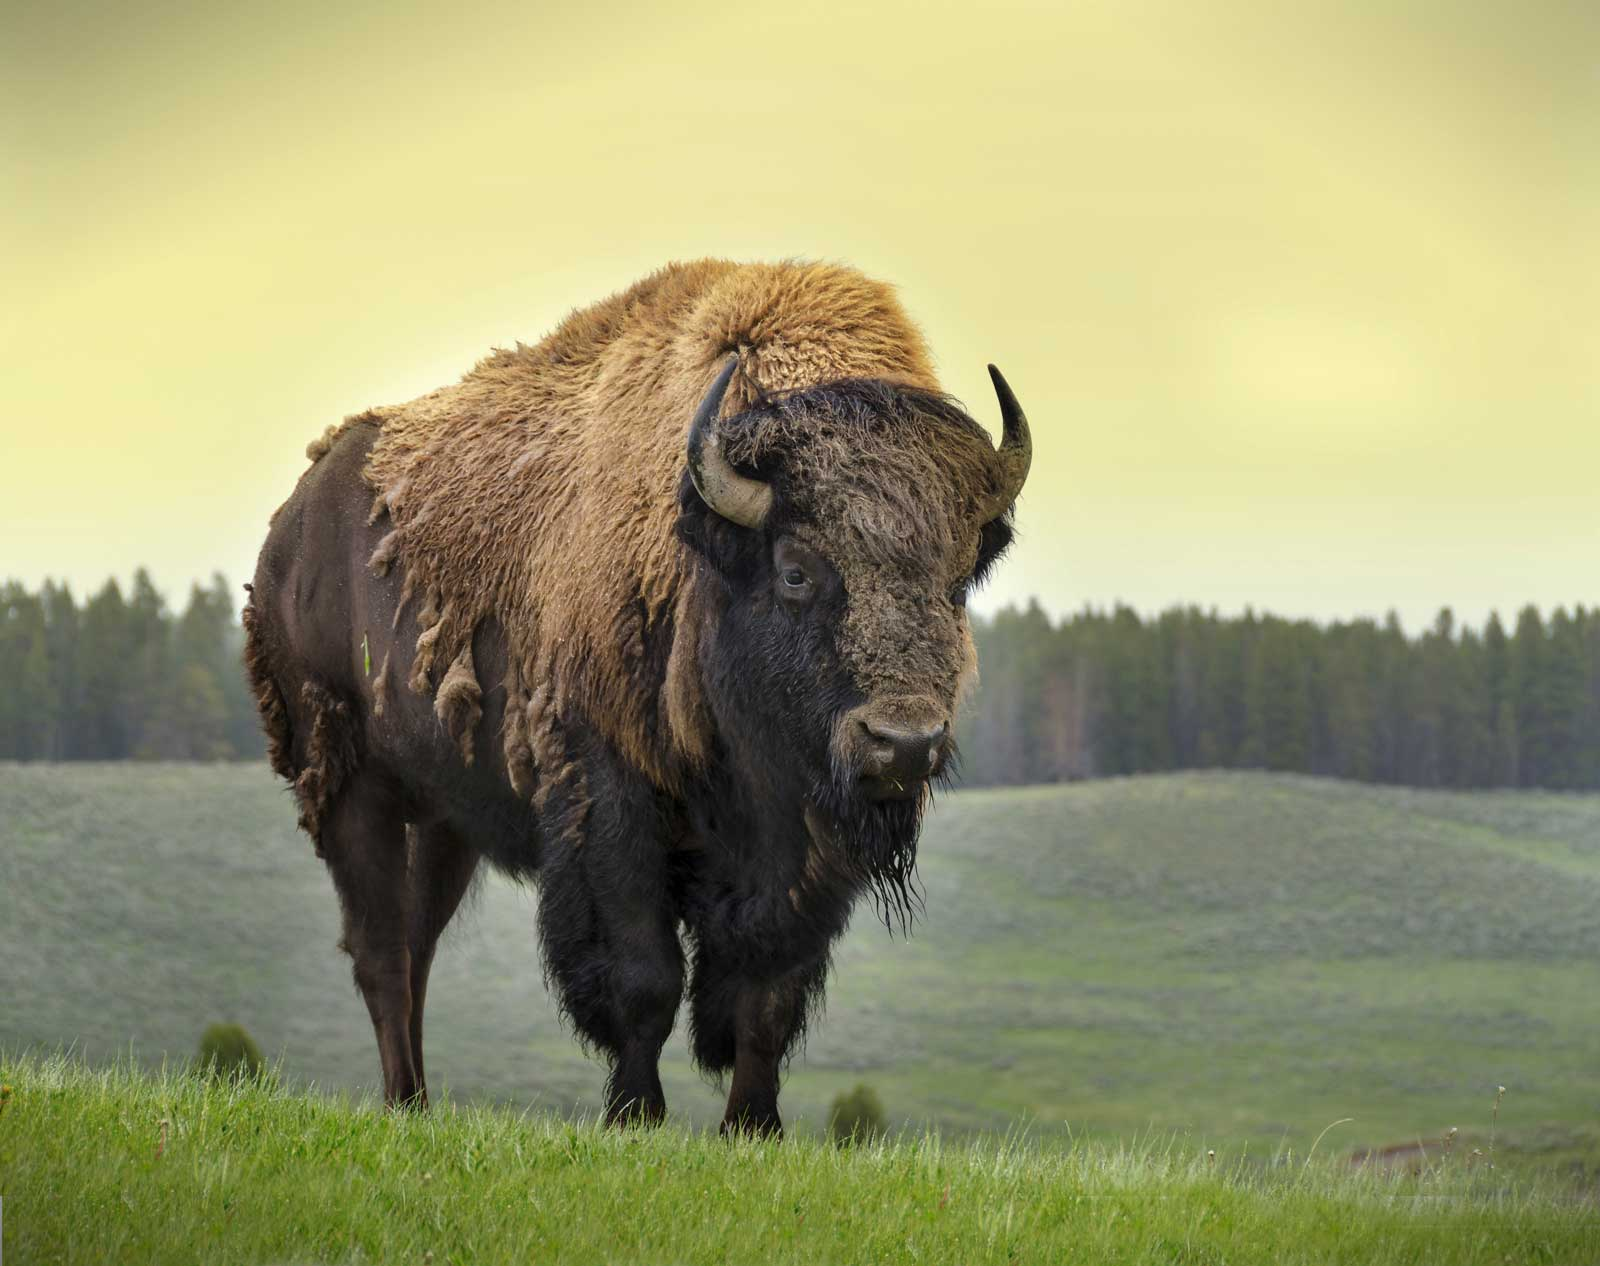 Stock image of Bison I chose to use